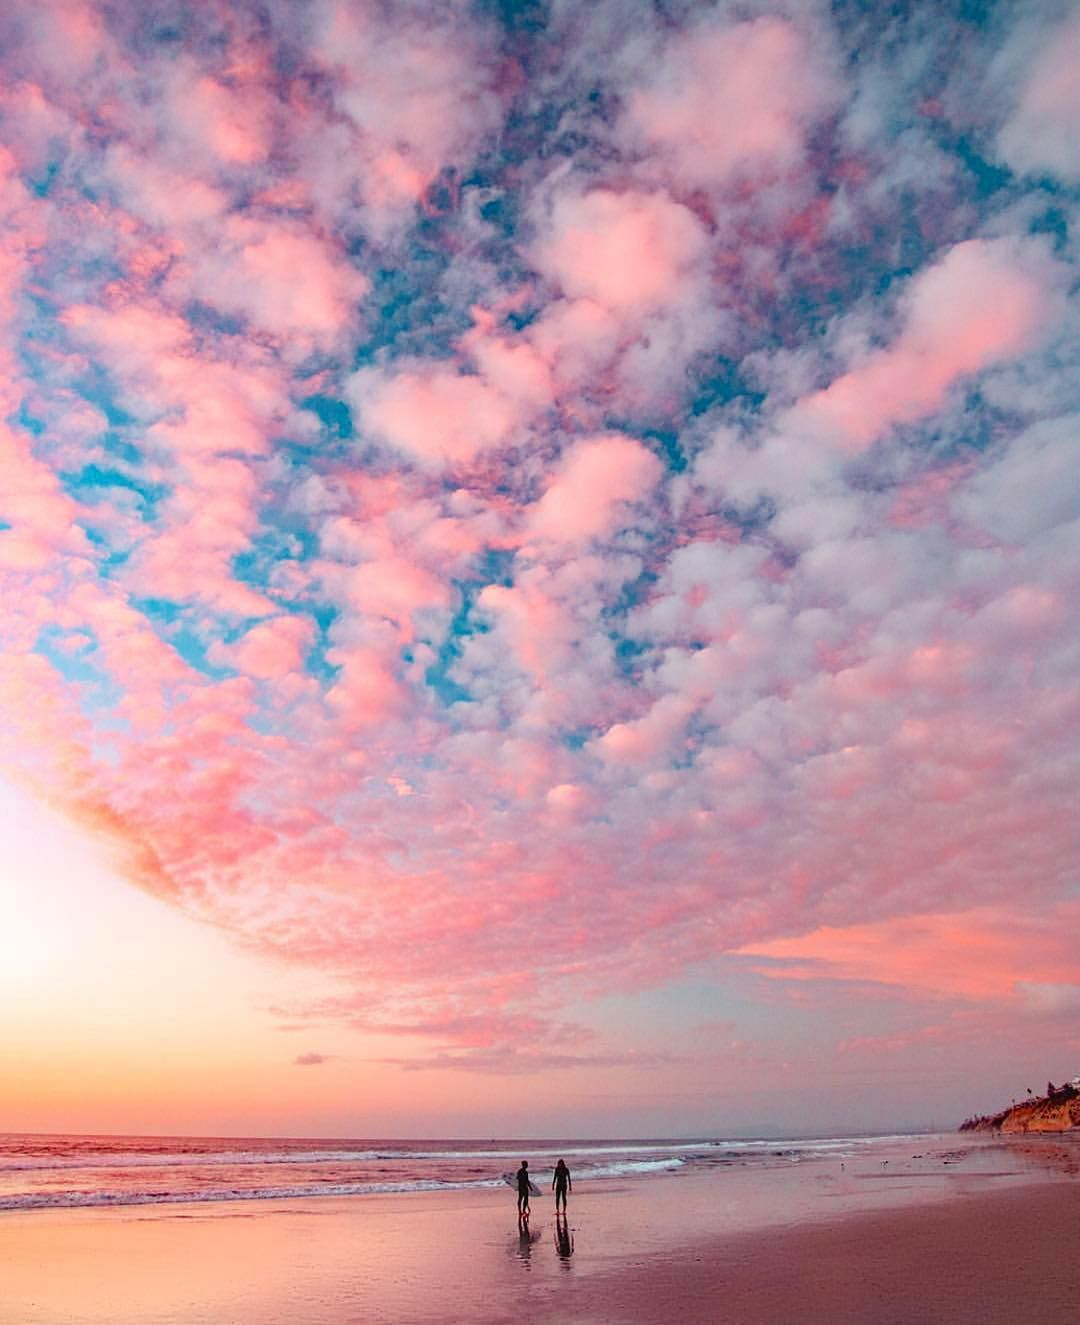 Blue And Pink Aesthetic Sunset